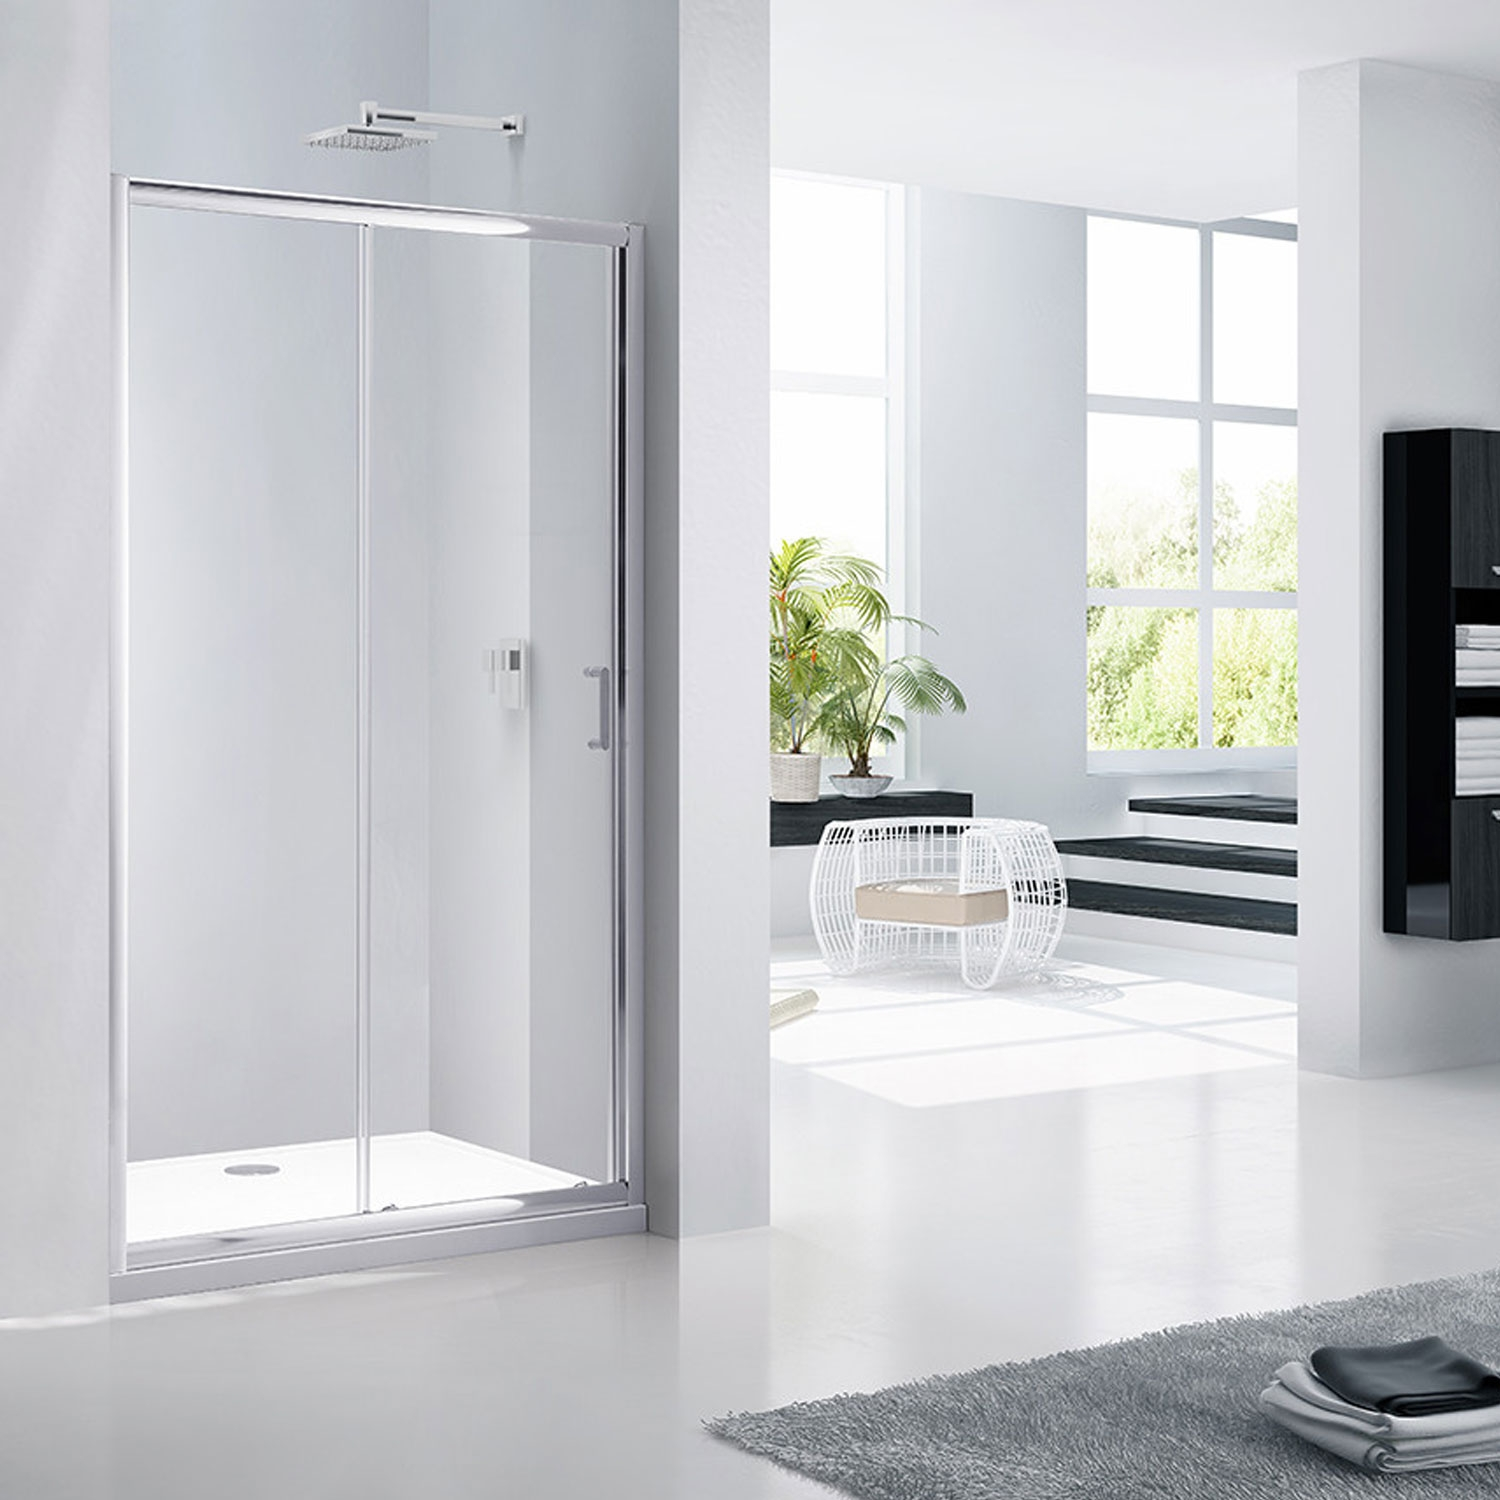 Verona Aquaglass Purity Sliding Shower Door 1700mm Wide - 6mm Glass-0